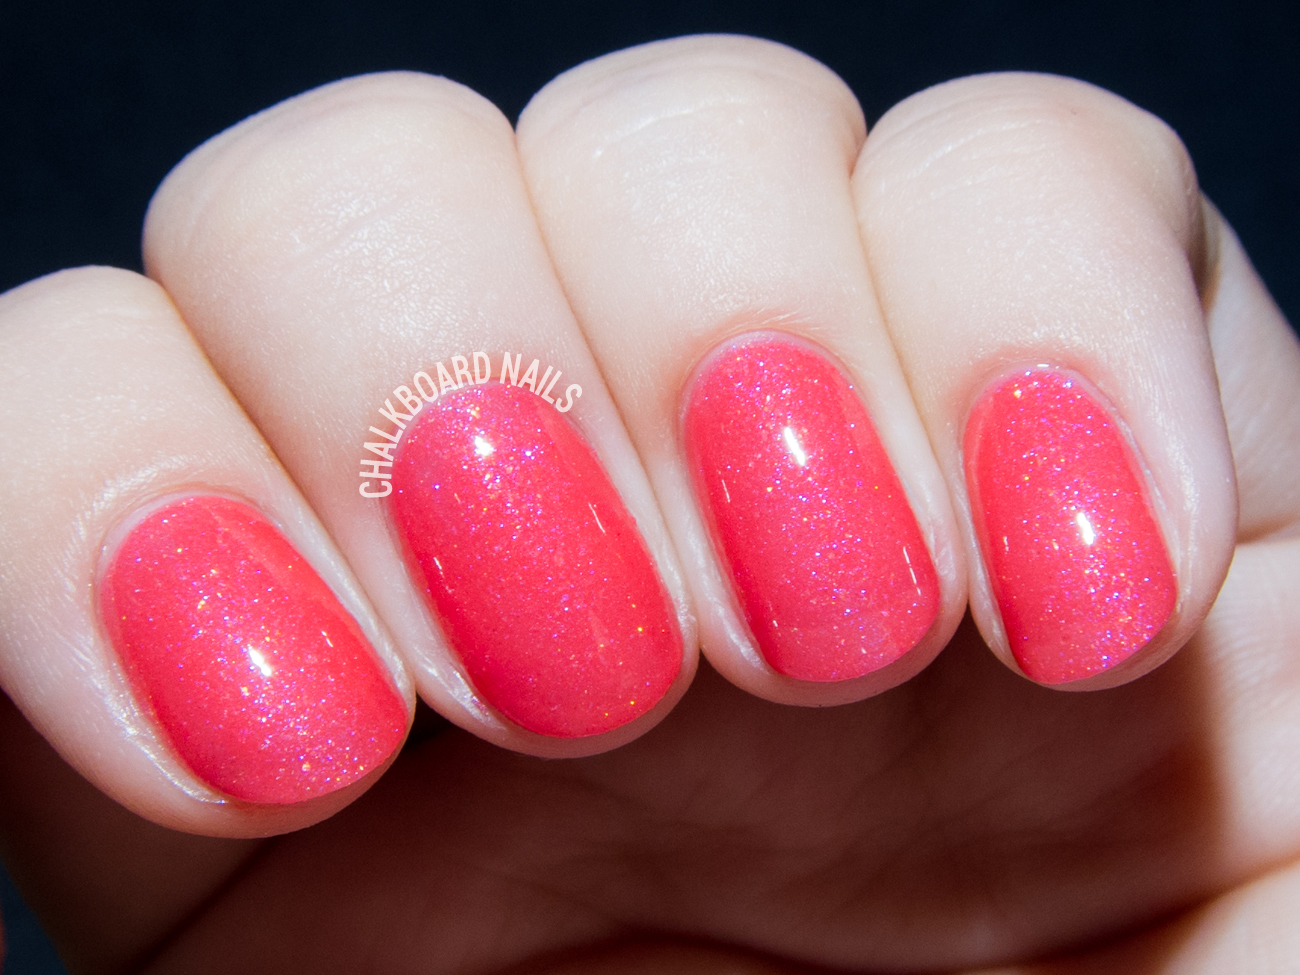 Serum No. 5 Raspberry Delight via @chalkboardnails